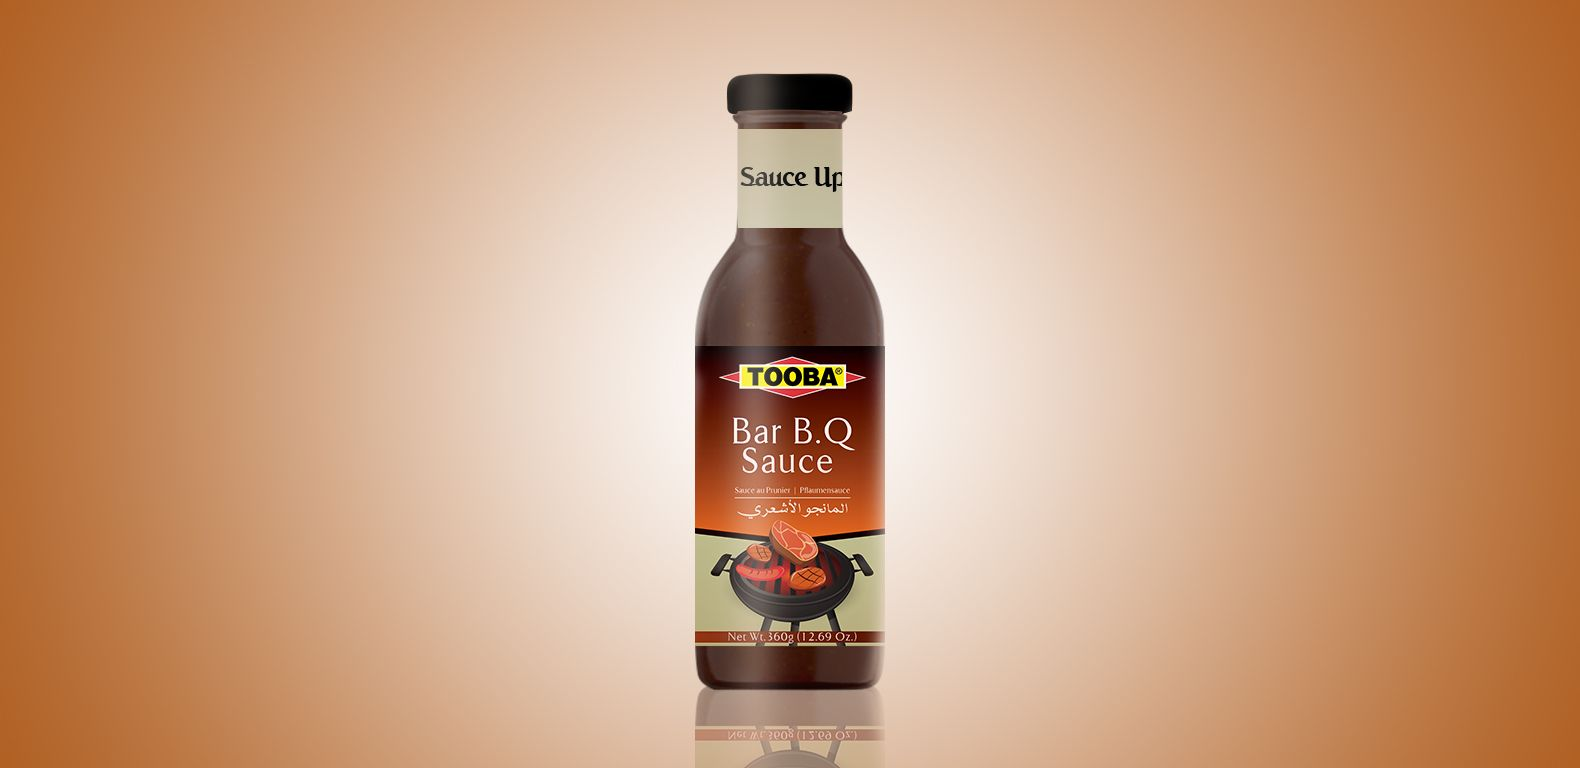 Packaging-Design-Tooba-Sauces-1580x768-BBQ